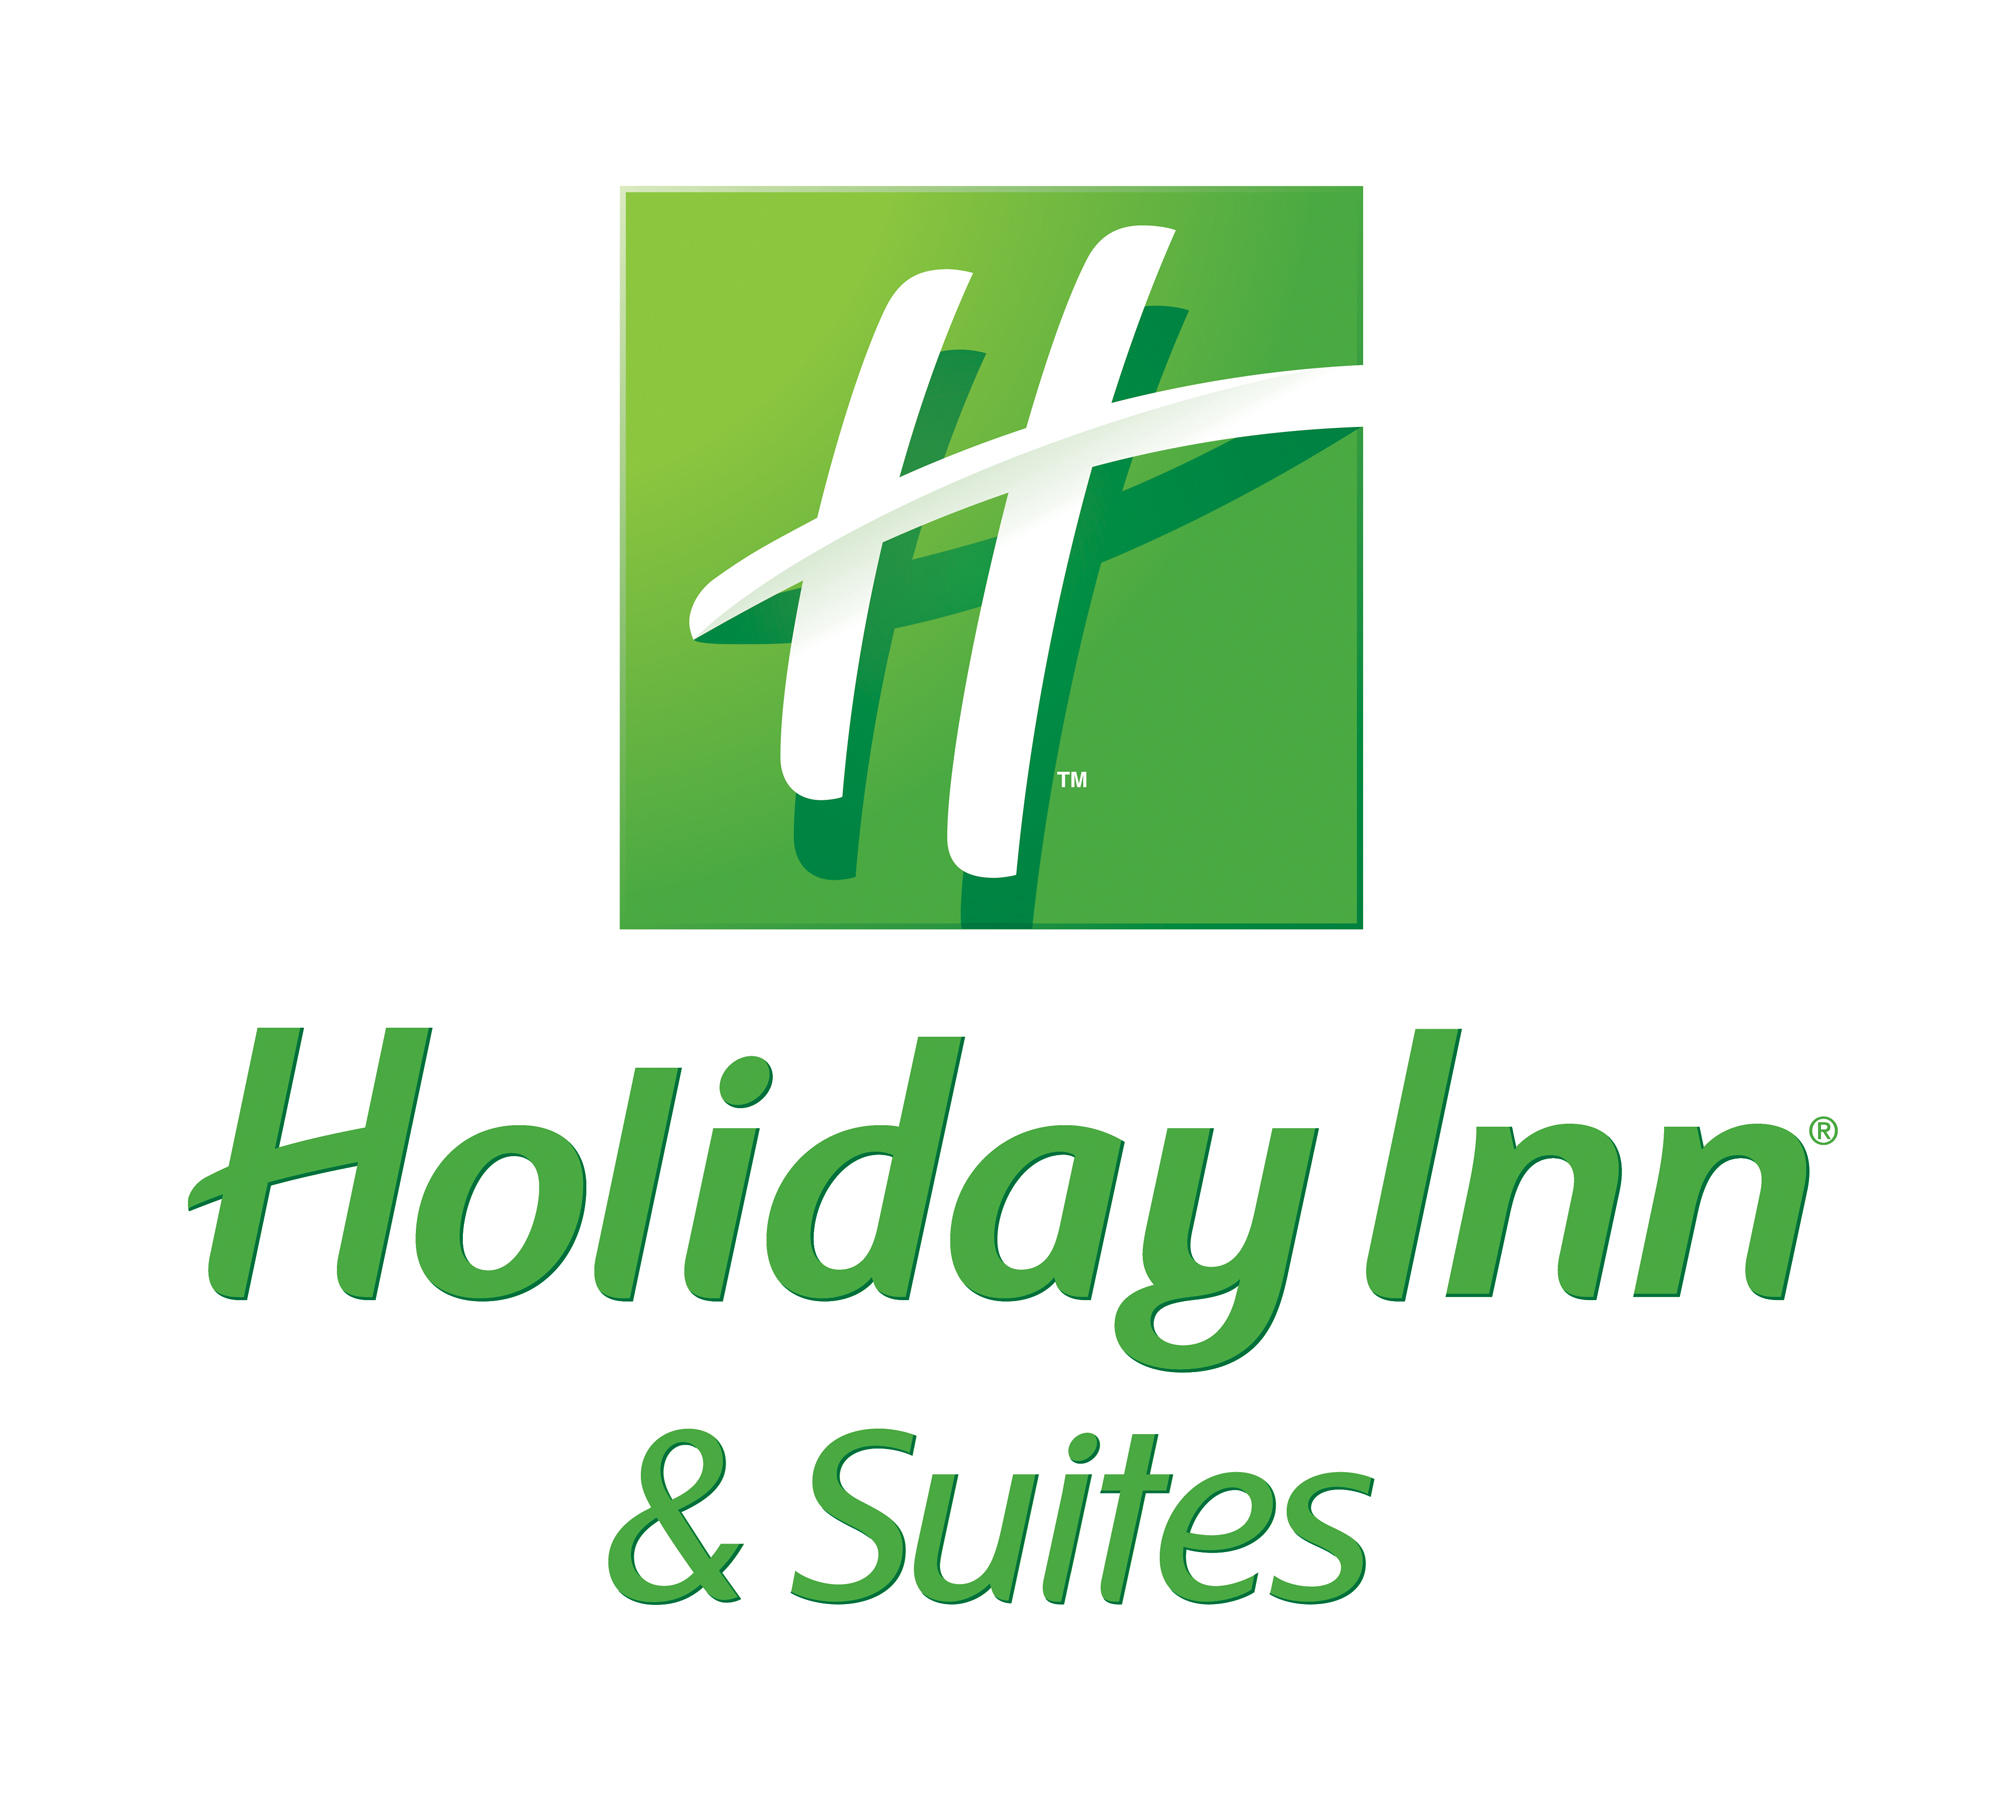 Holiday Inn Suites Logo